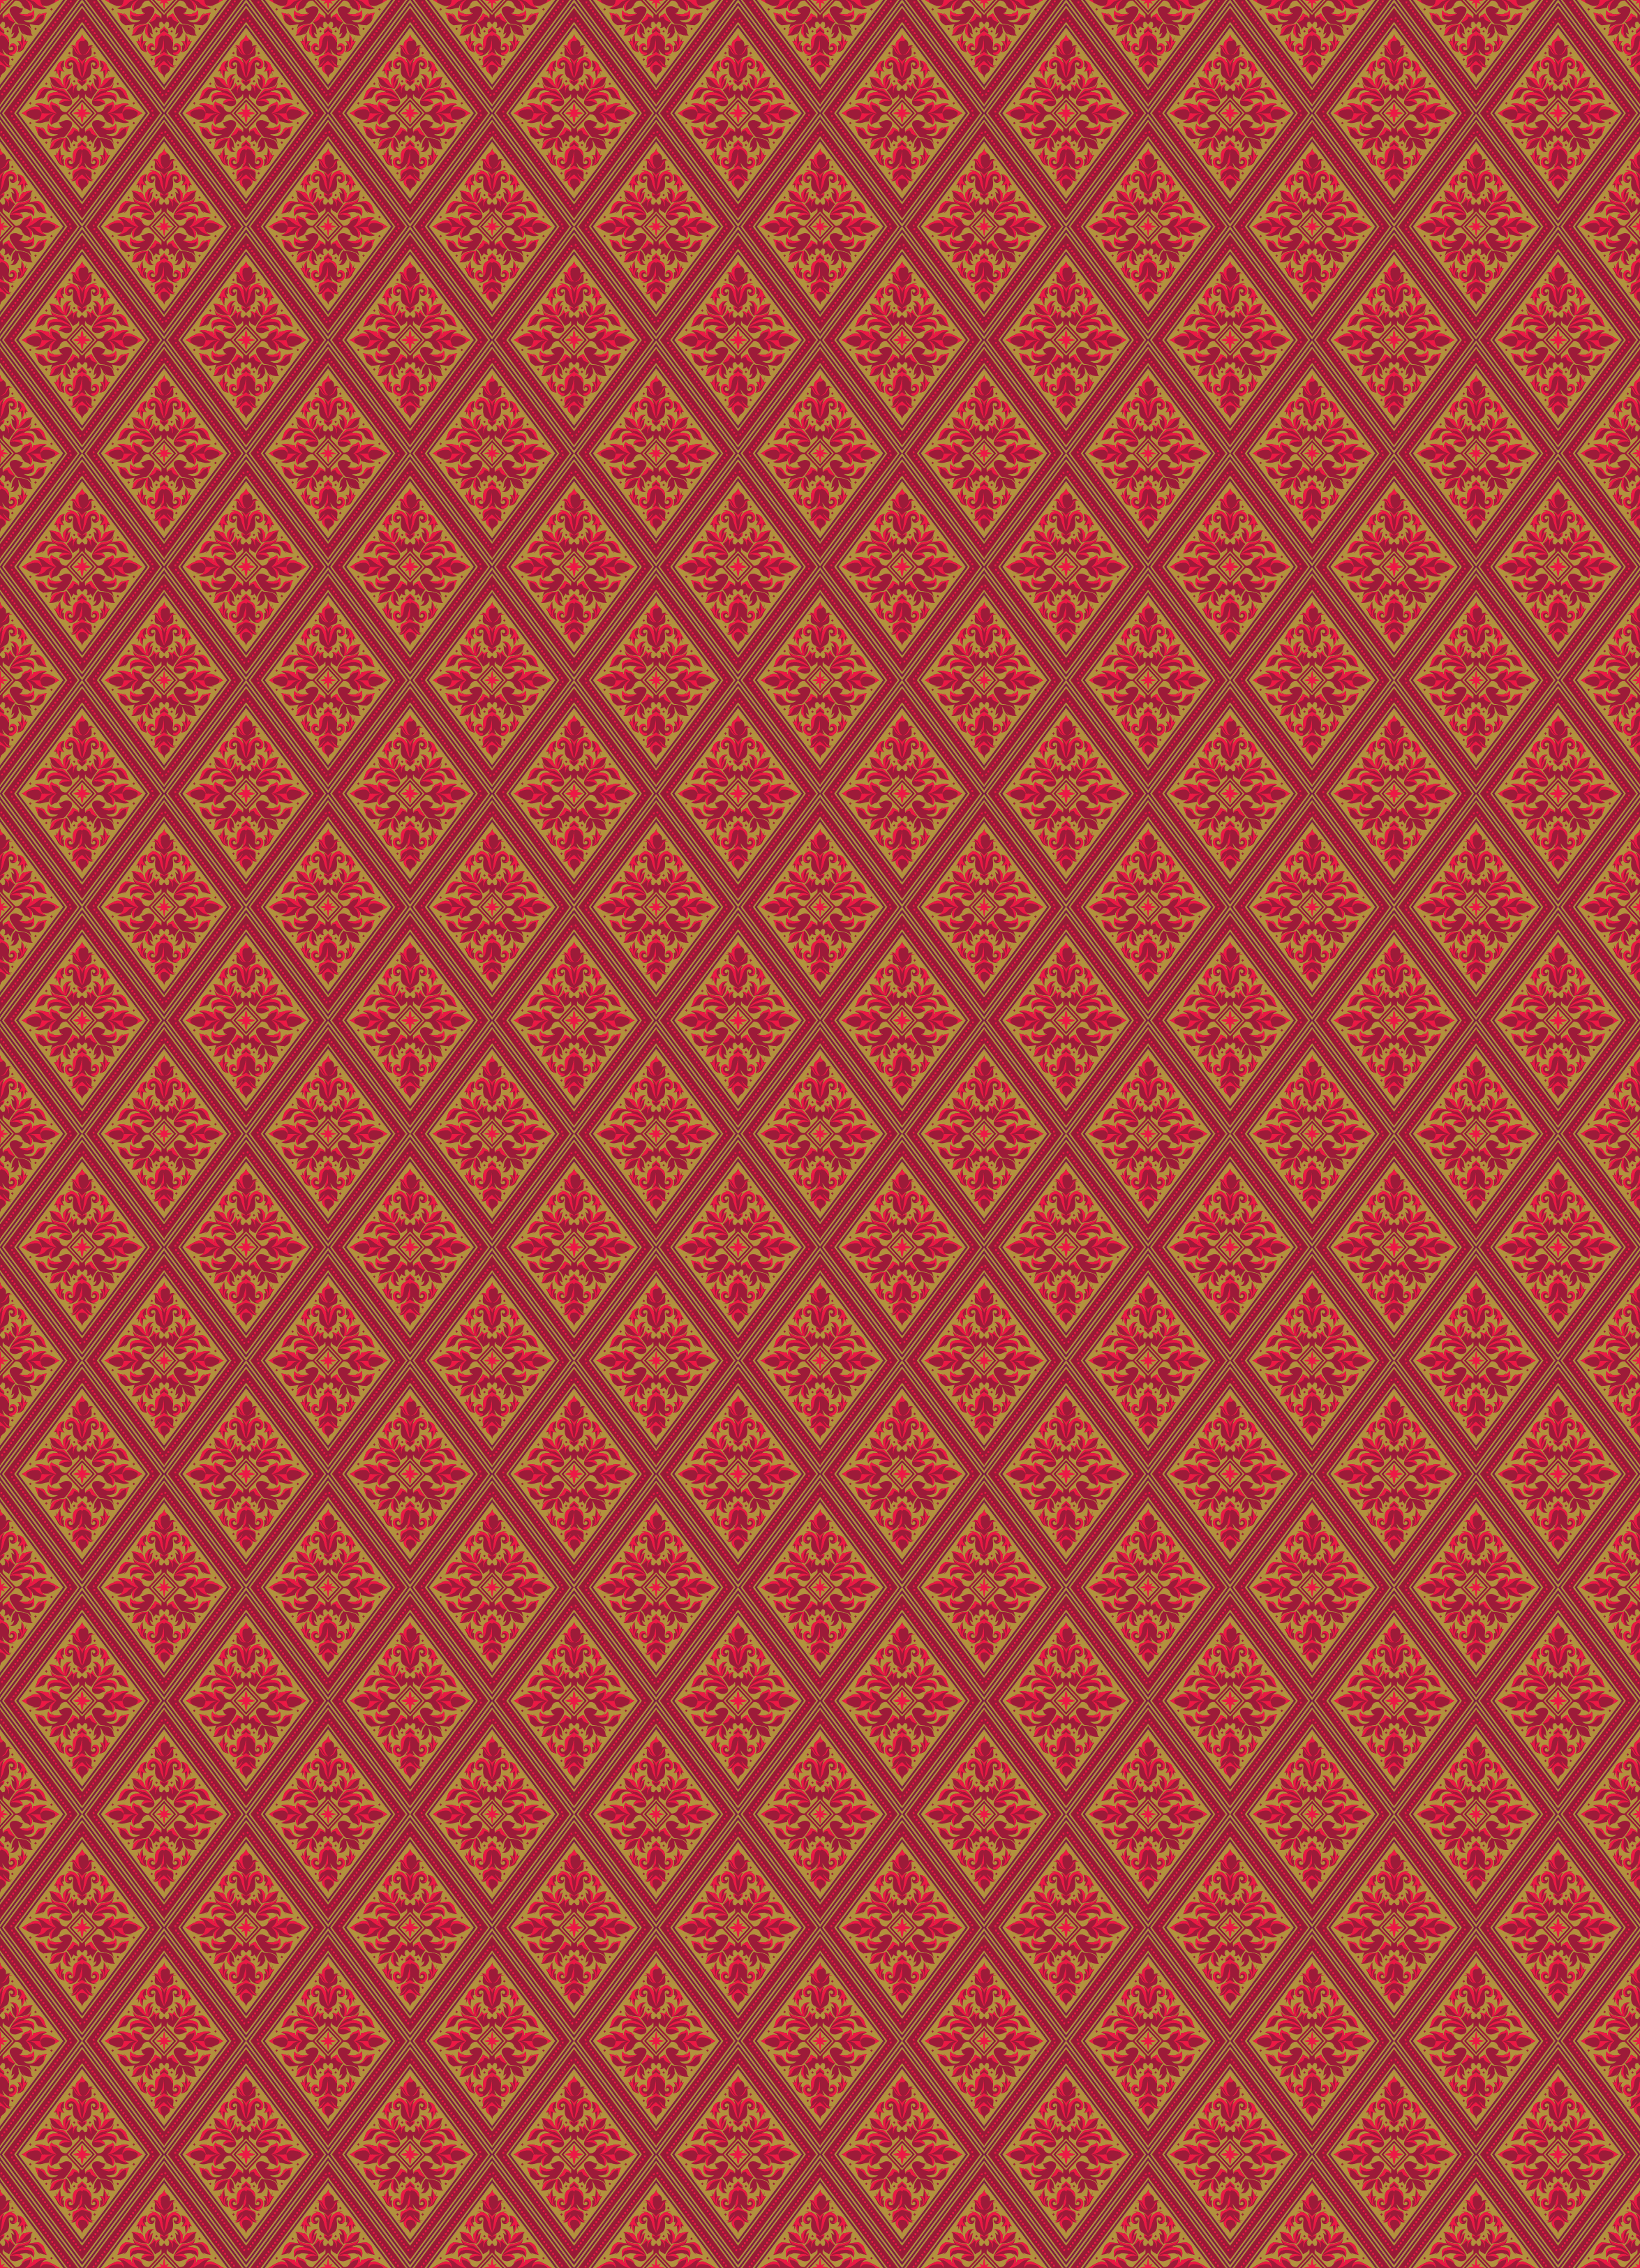 Interior Seamless Pattern PPT Backgrounds